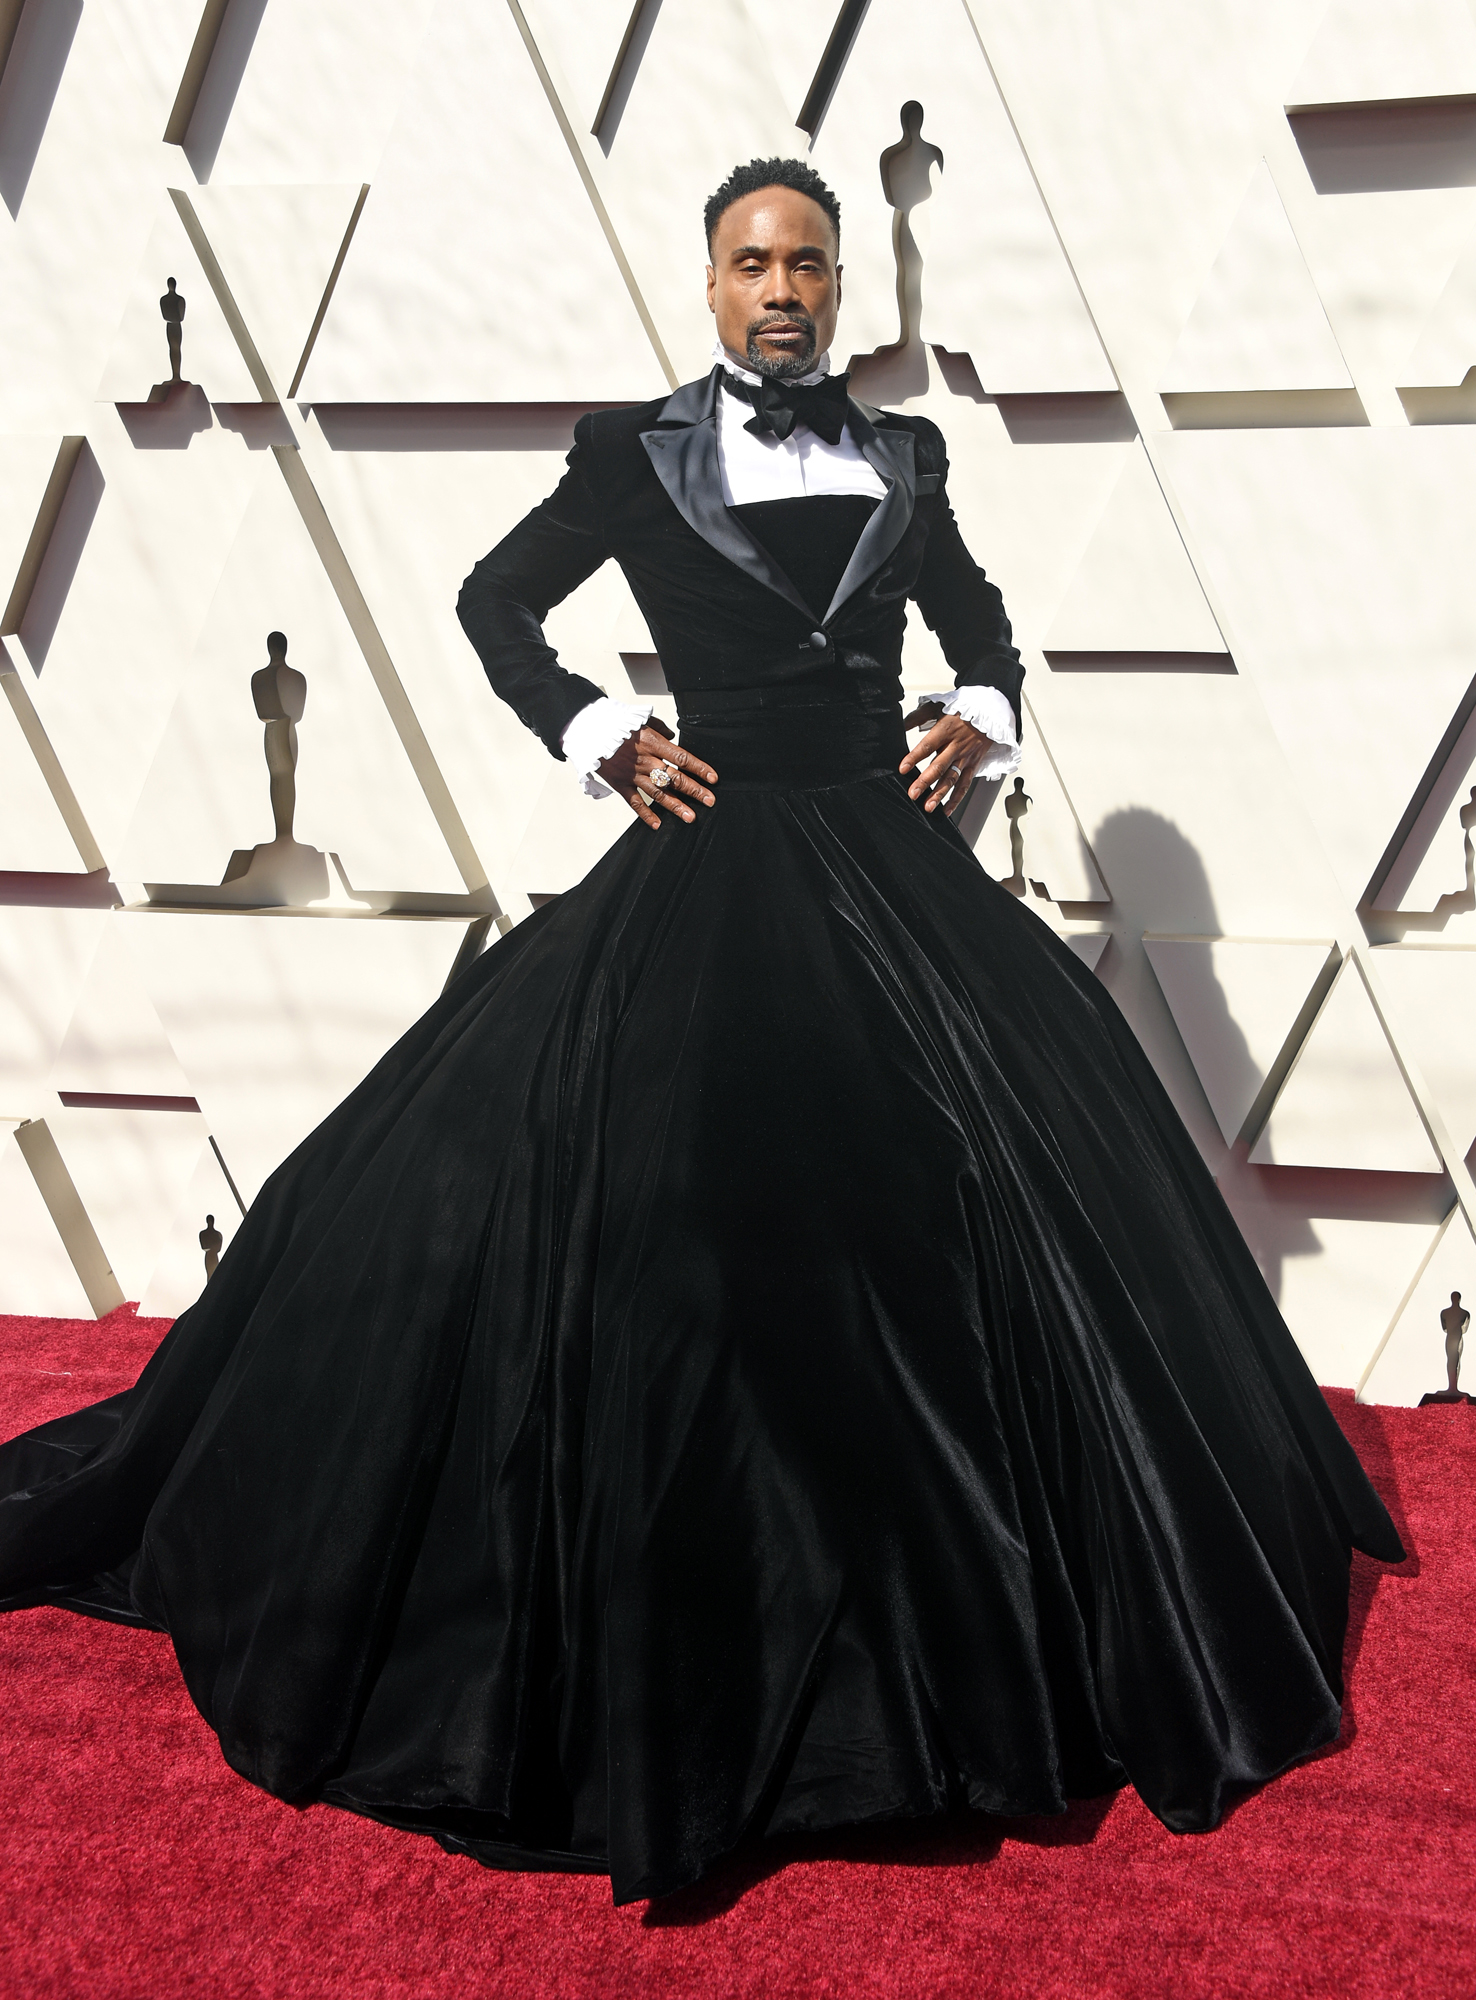 Billy Porter at the Oscars, 2019